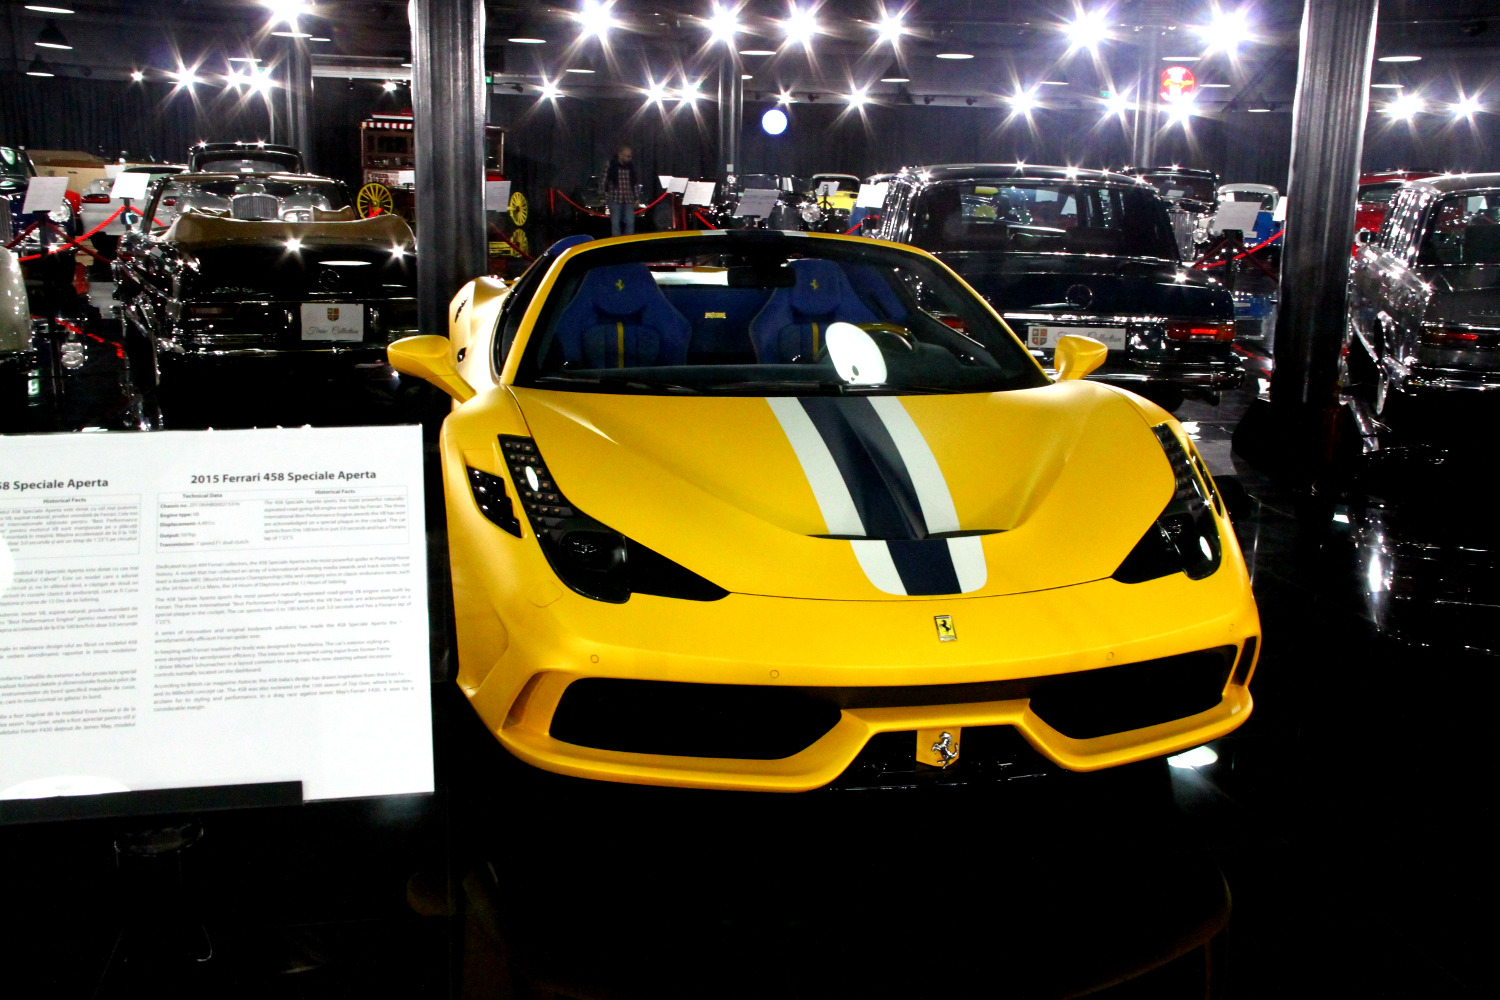 Ferrari 458 - Tiriac Collection